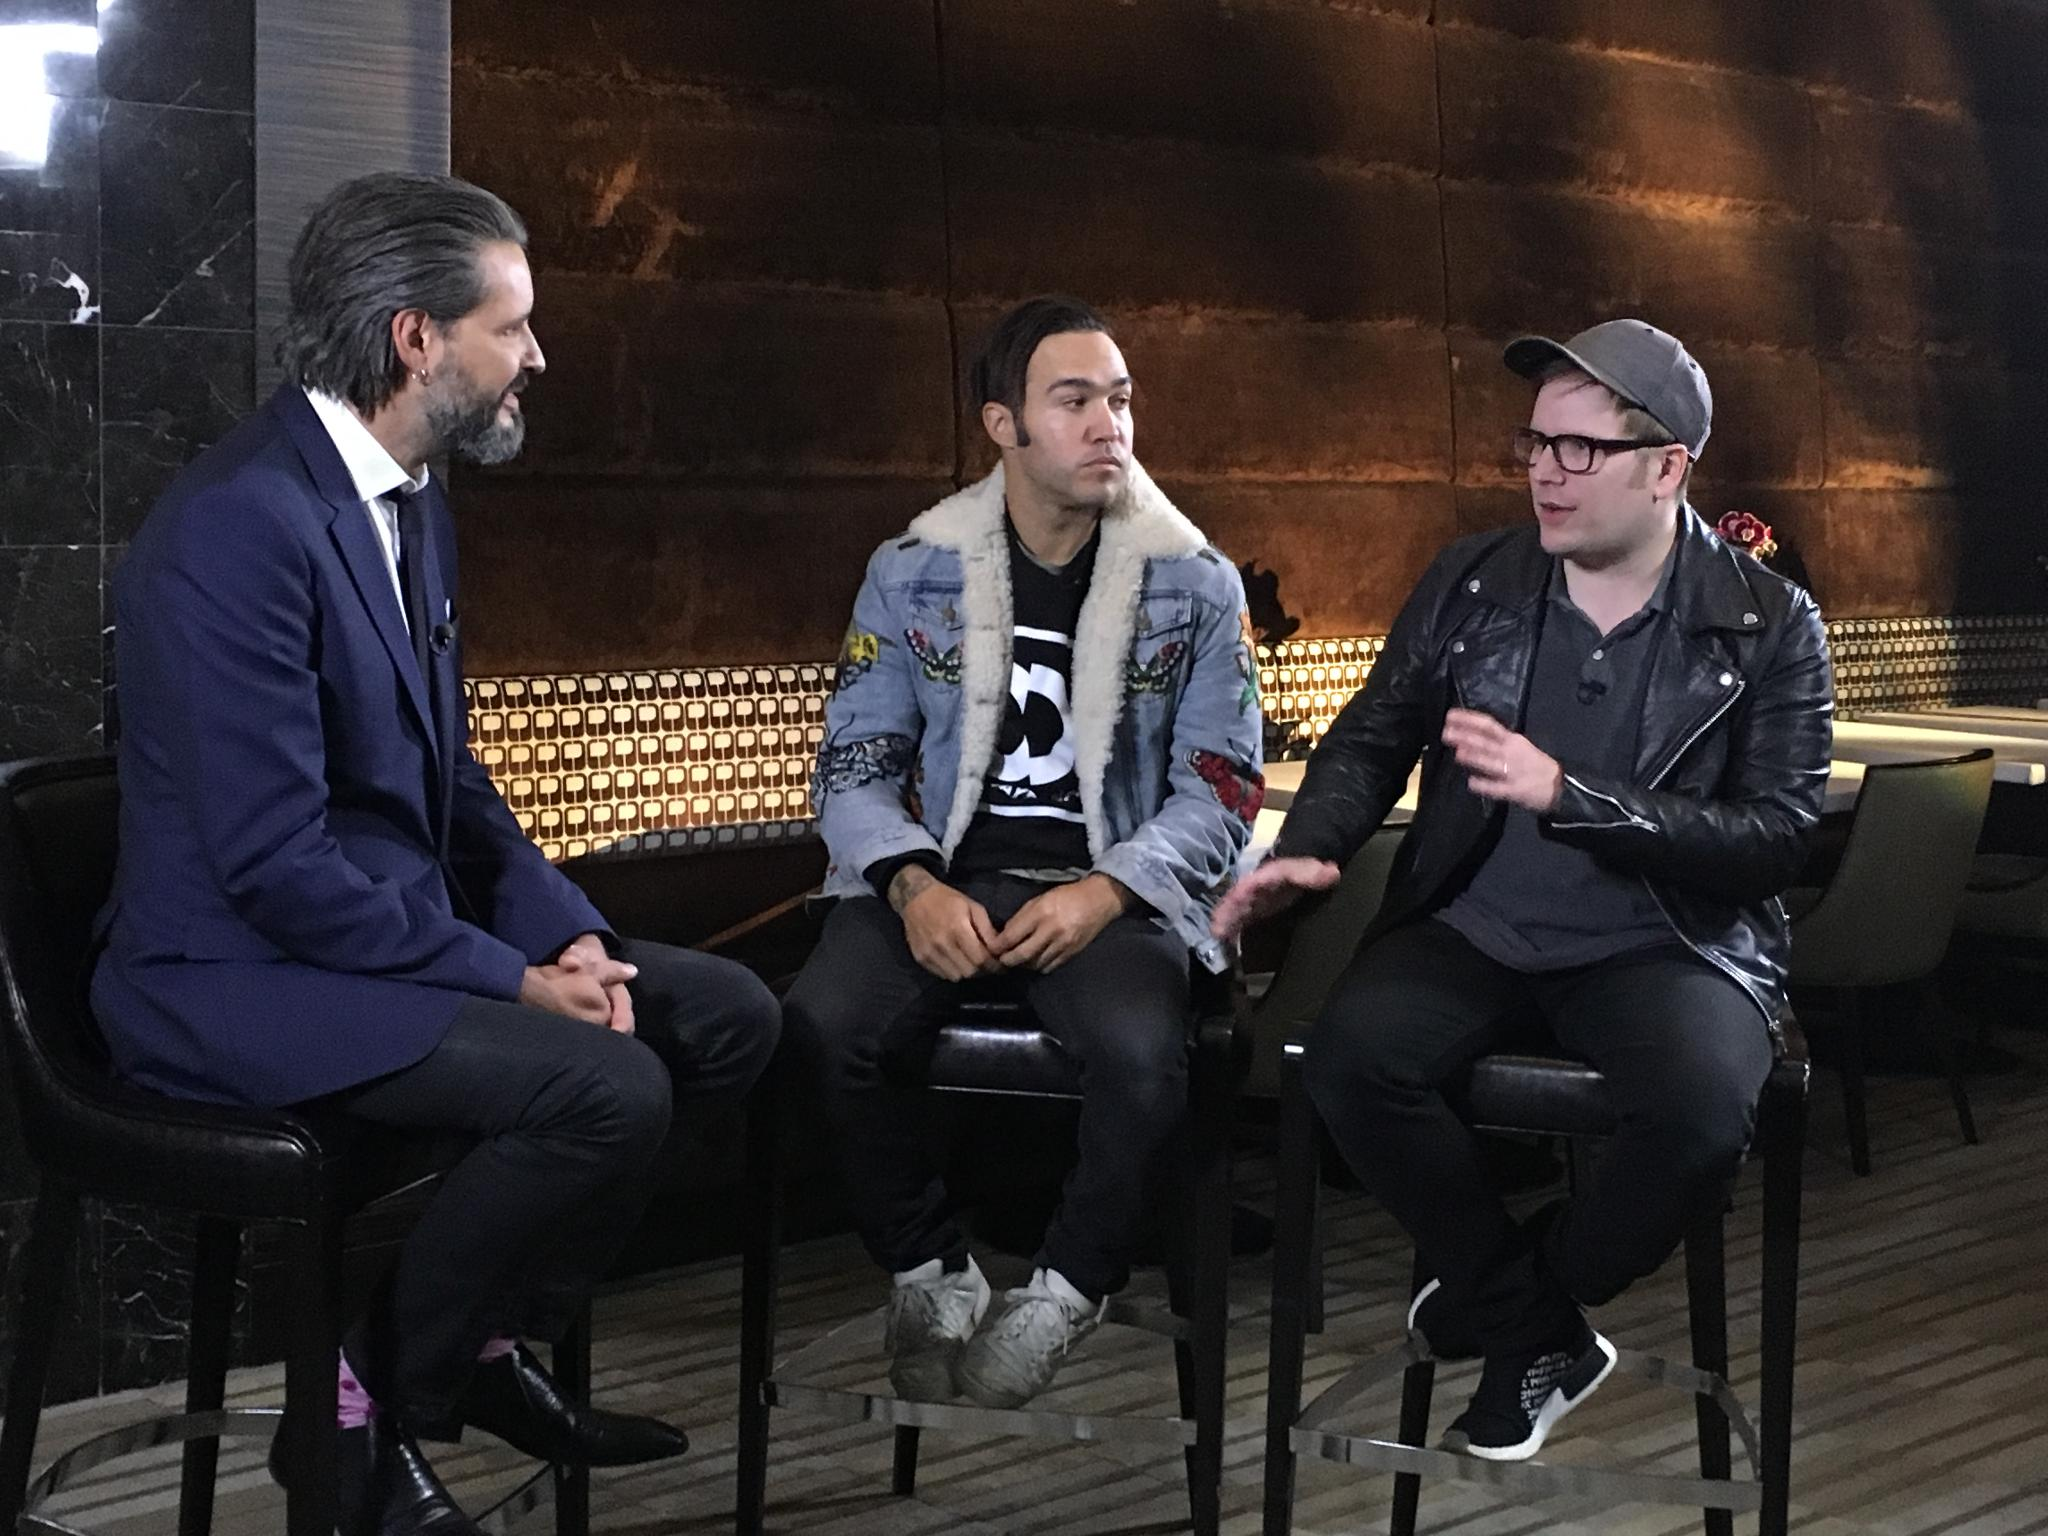 Video: @falloutboy on the delay of their new album & their love for playing live https://t.co/0RRVTeHla4 . #MANIA https://t.co/RHOy8lffrV